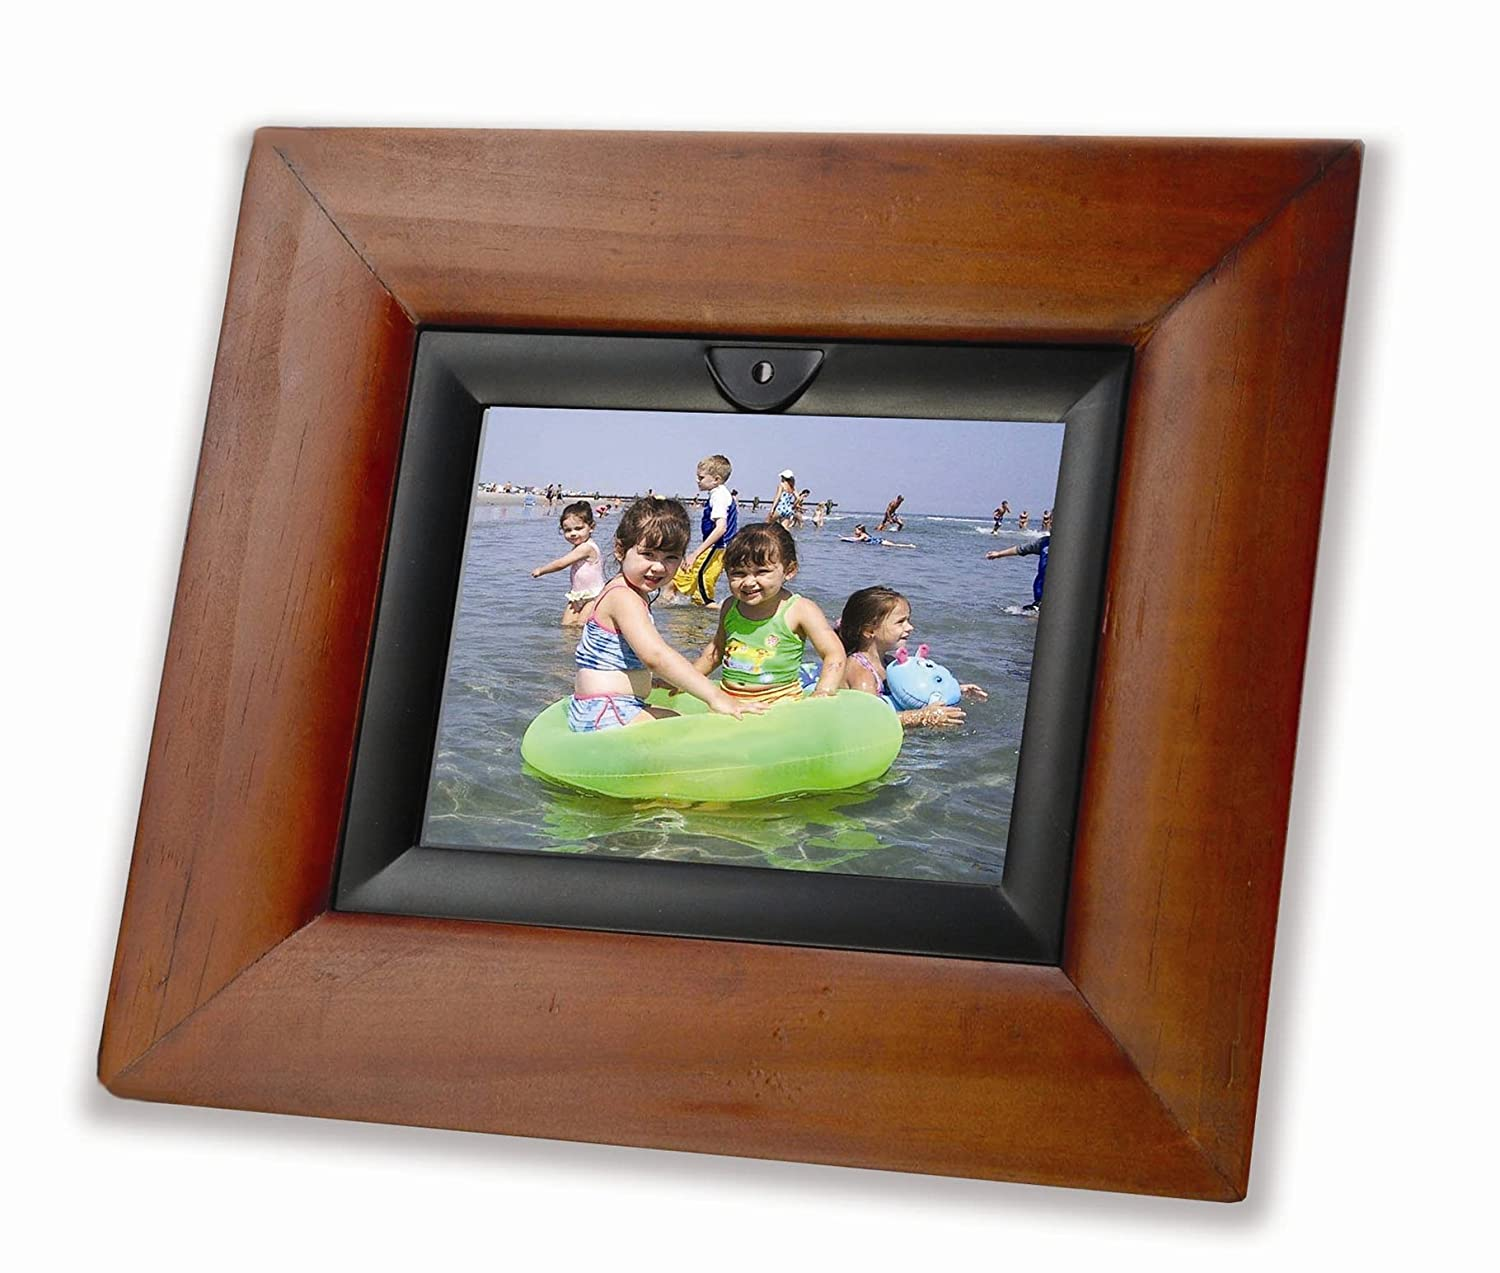 Amazon smartparts 56 inch digital photo frame digital amazon smartparts 56 inch digital photo frame digital picture frames camera photo jeuxipadfo Gallery